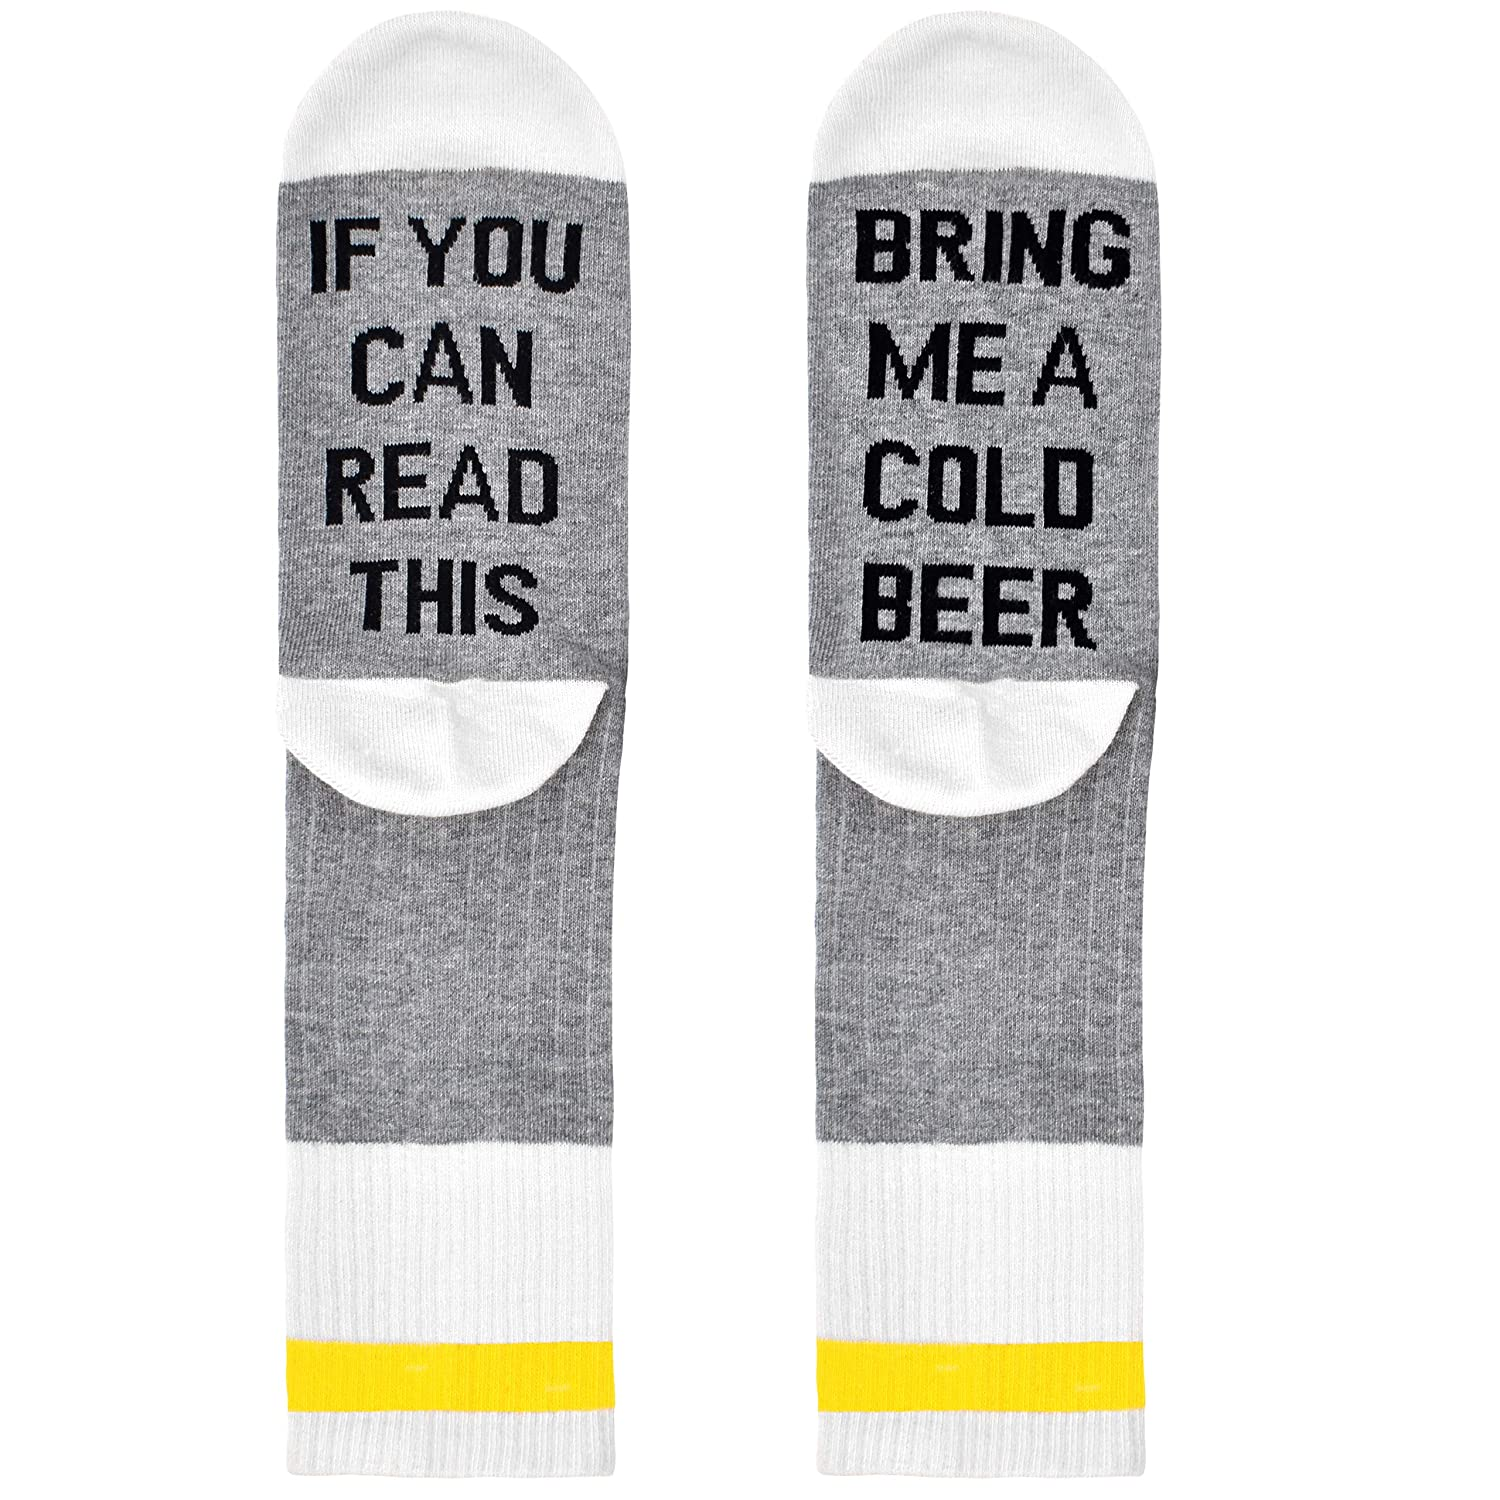 Birthdays Gift Box If You can Read This Bring me a Cold Beer for Beer Lovers White Elephant Mother or Father Gift Comfort Cotton Socks Husband or Best Friend Beer Socks